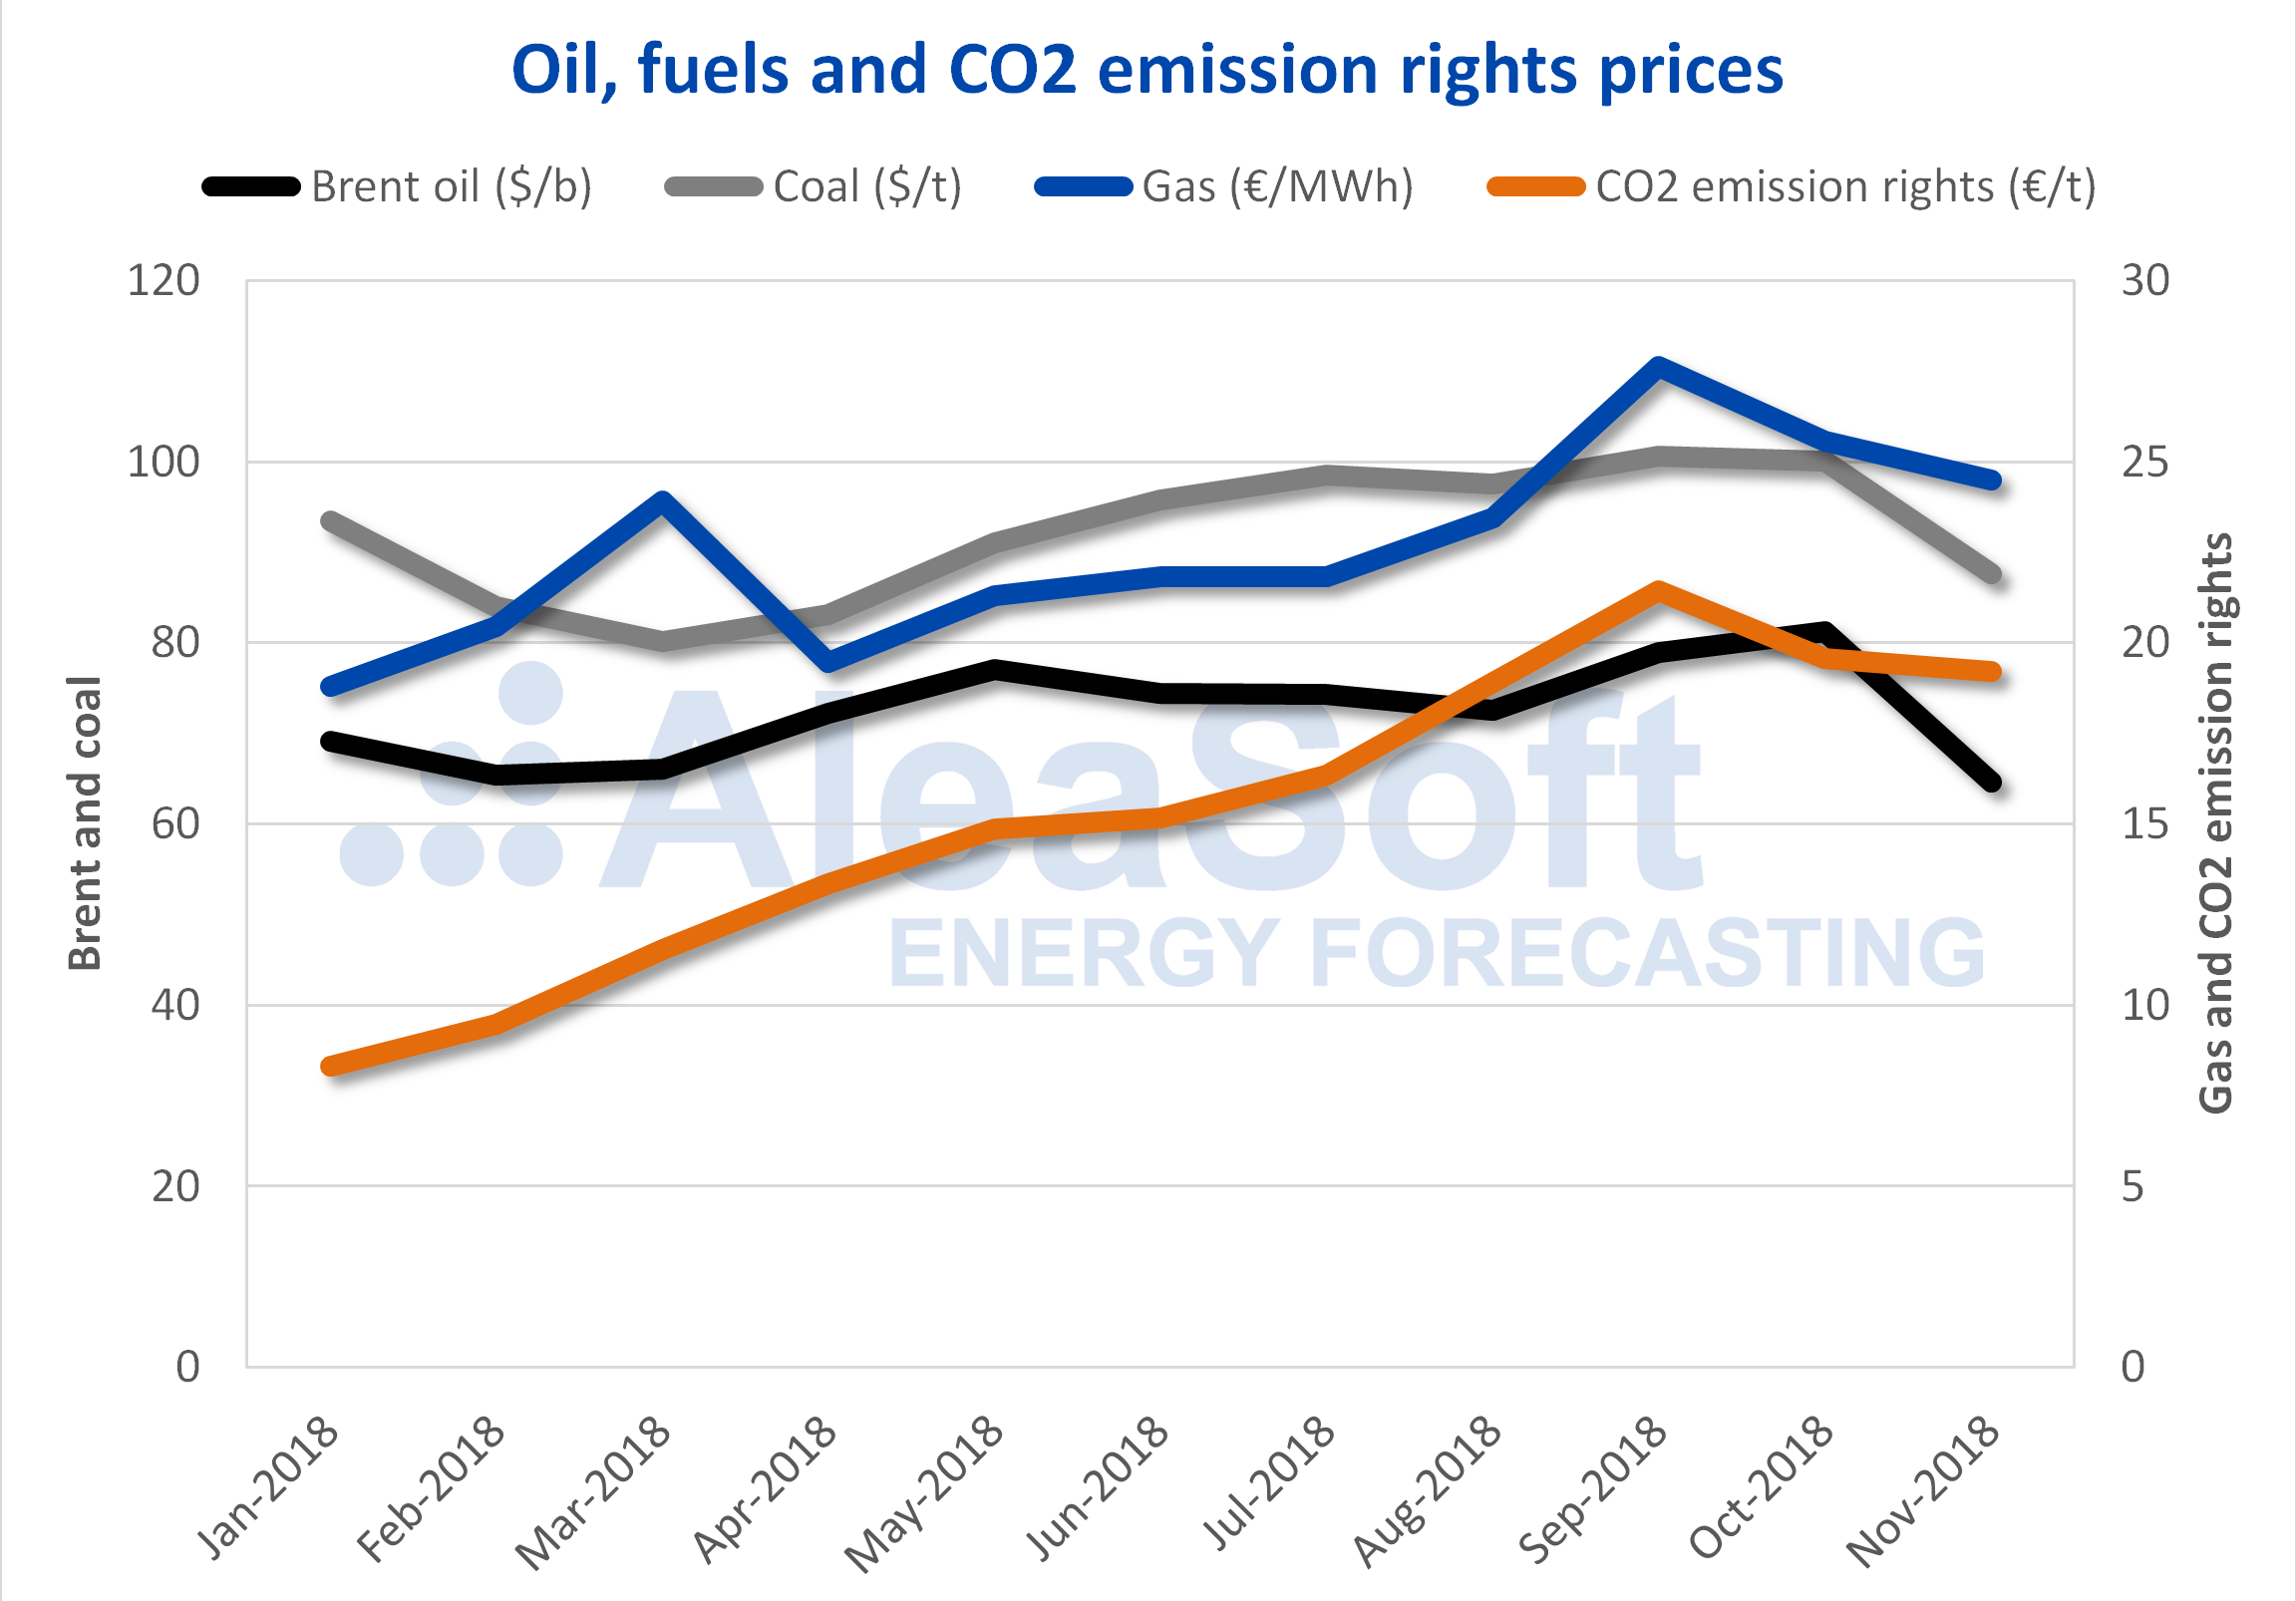 AleaSoft - Oil fuels and CO2 price